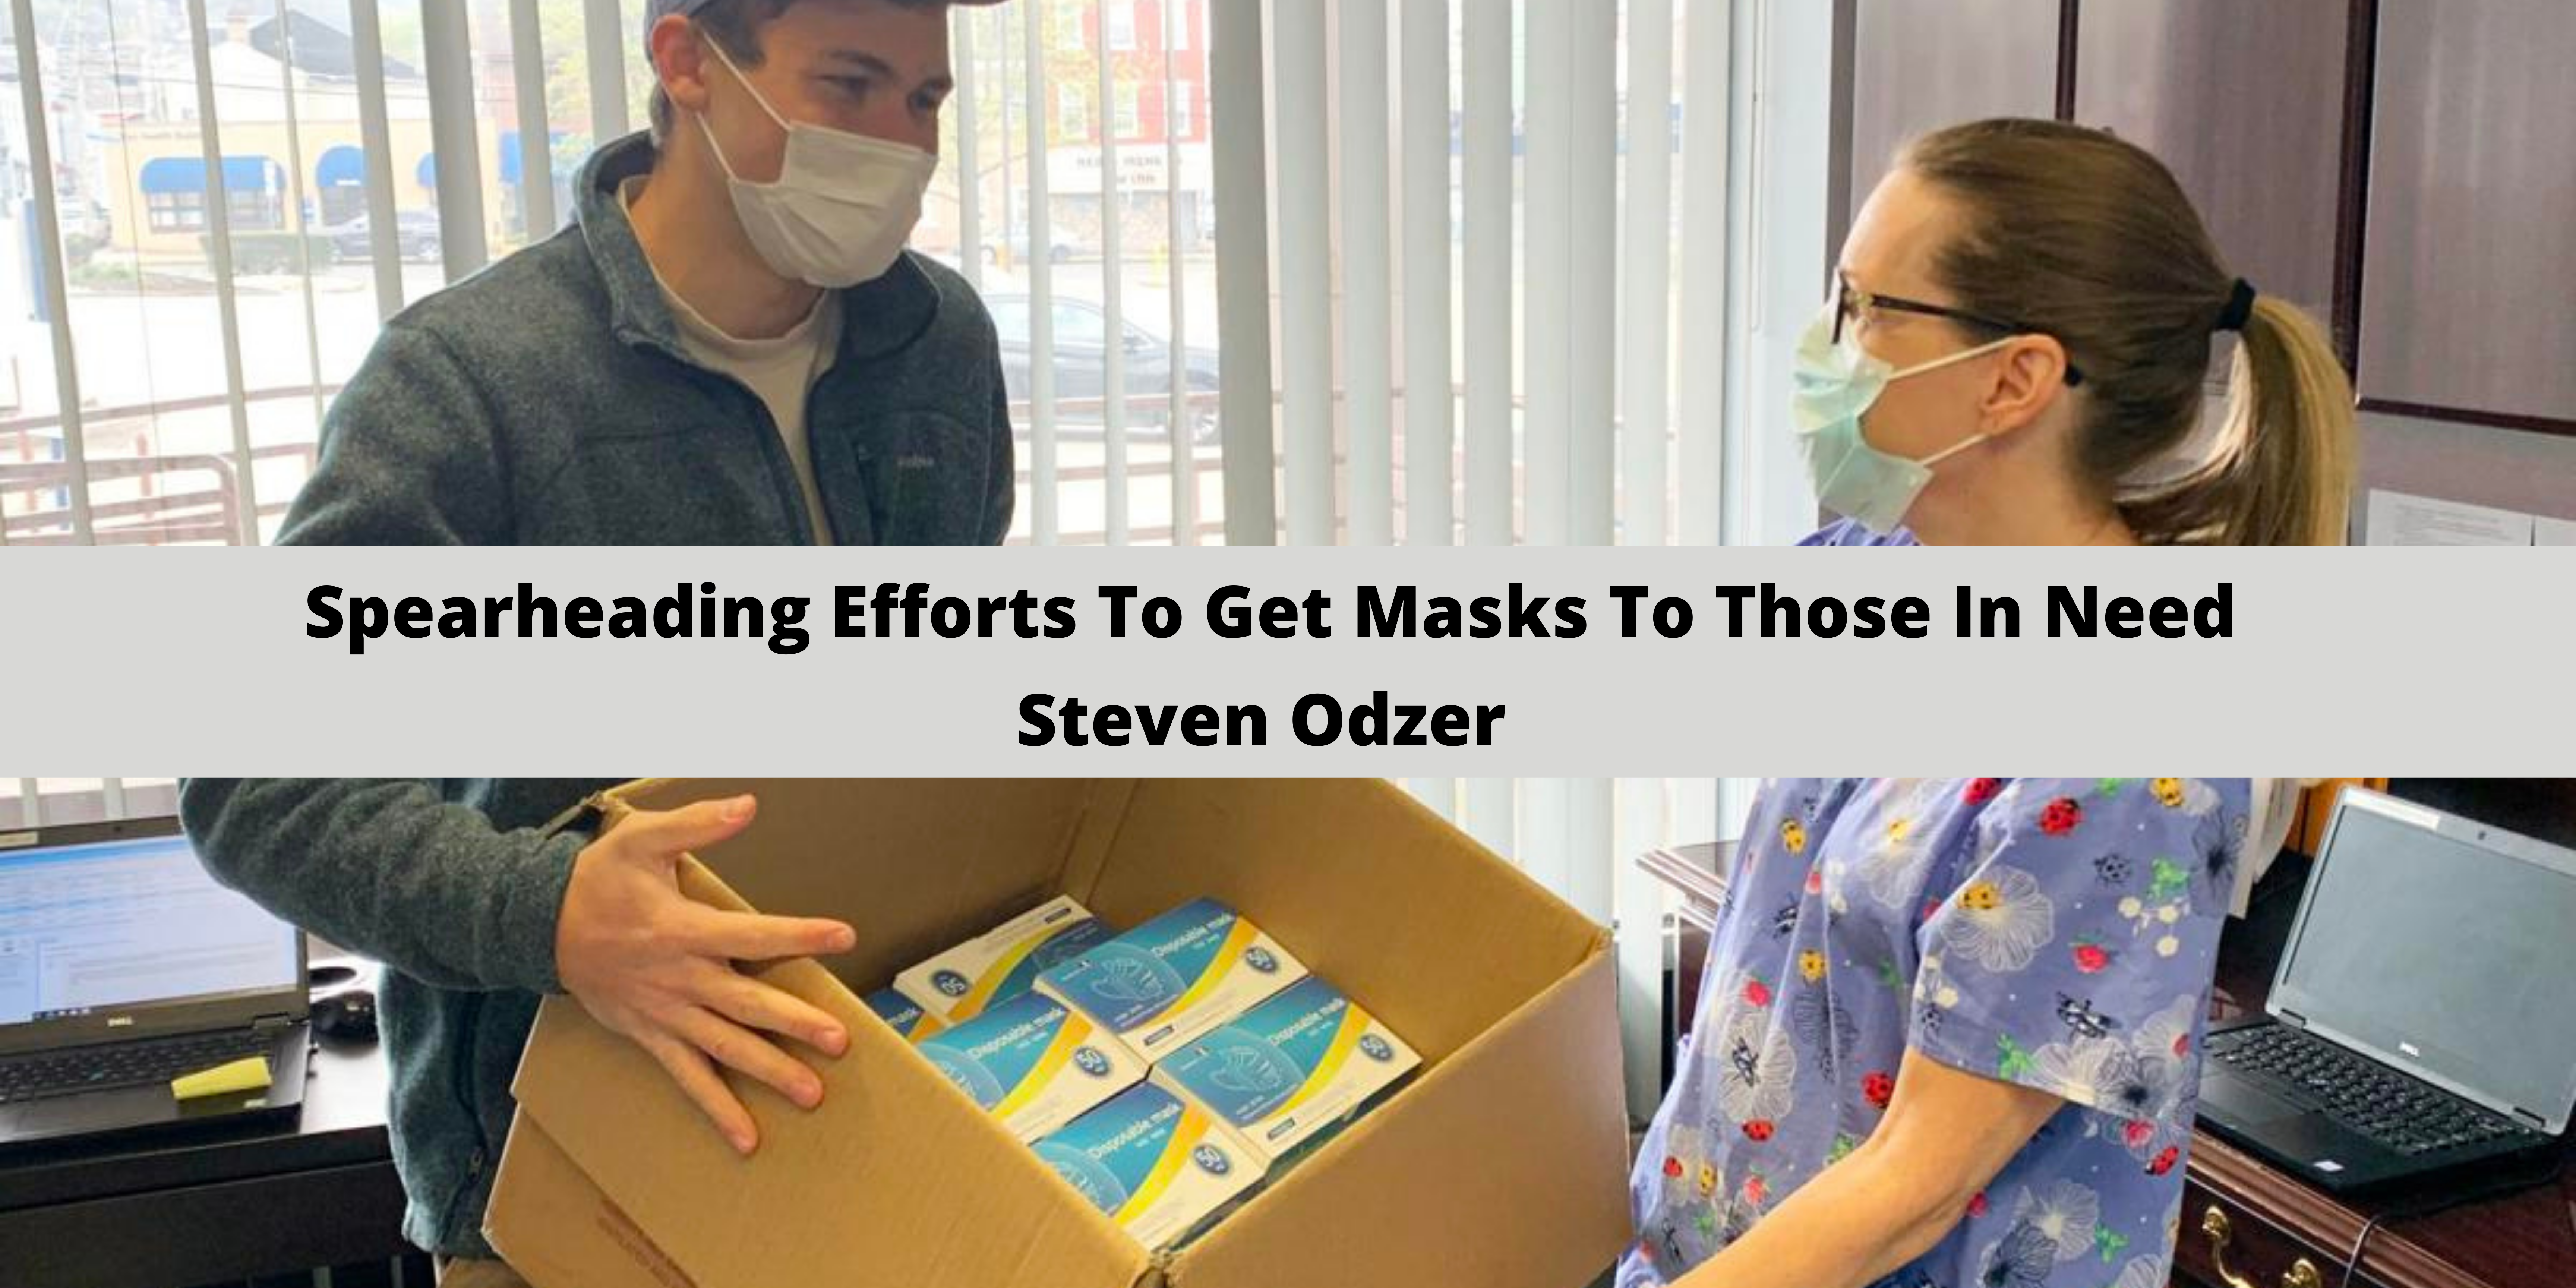 Masks Matter: Why CEO Steven Odzer Is Spearheading Efforts To Get Masks To Those In Need